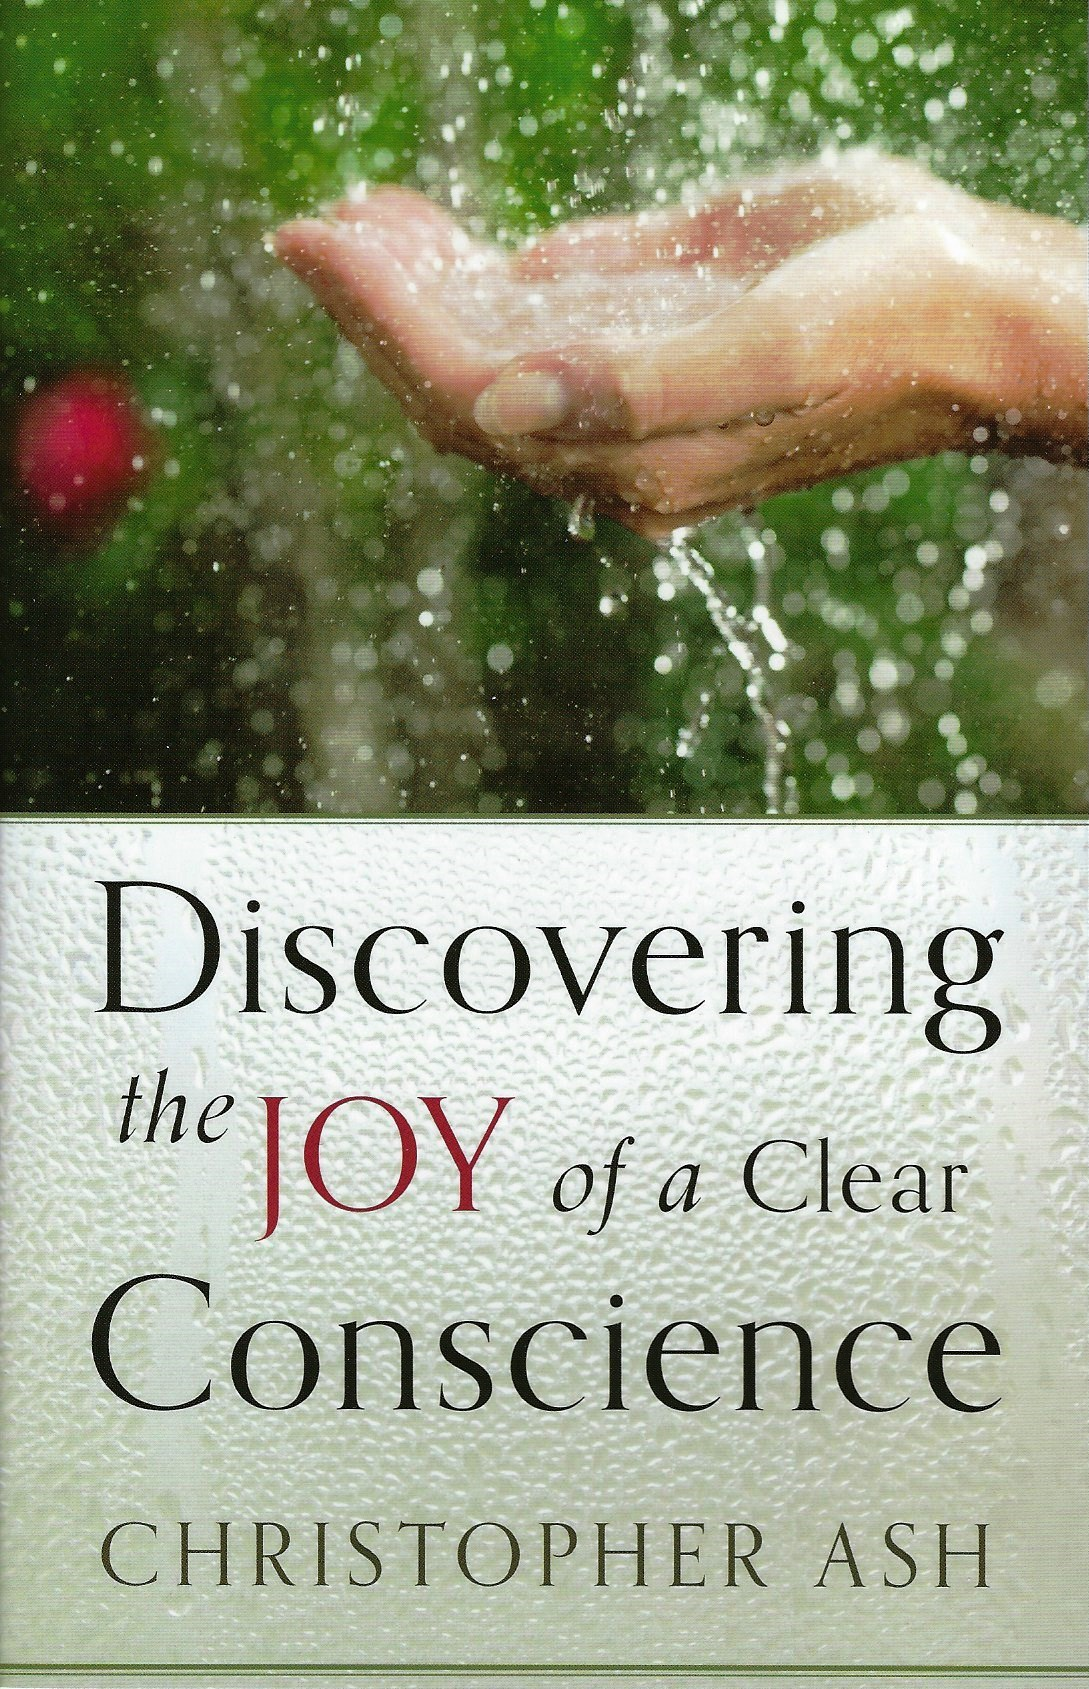 DISCOVERING THE JOY OF A CLEAR CONSCIENCE Christopher Ash